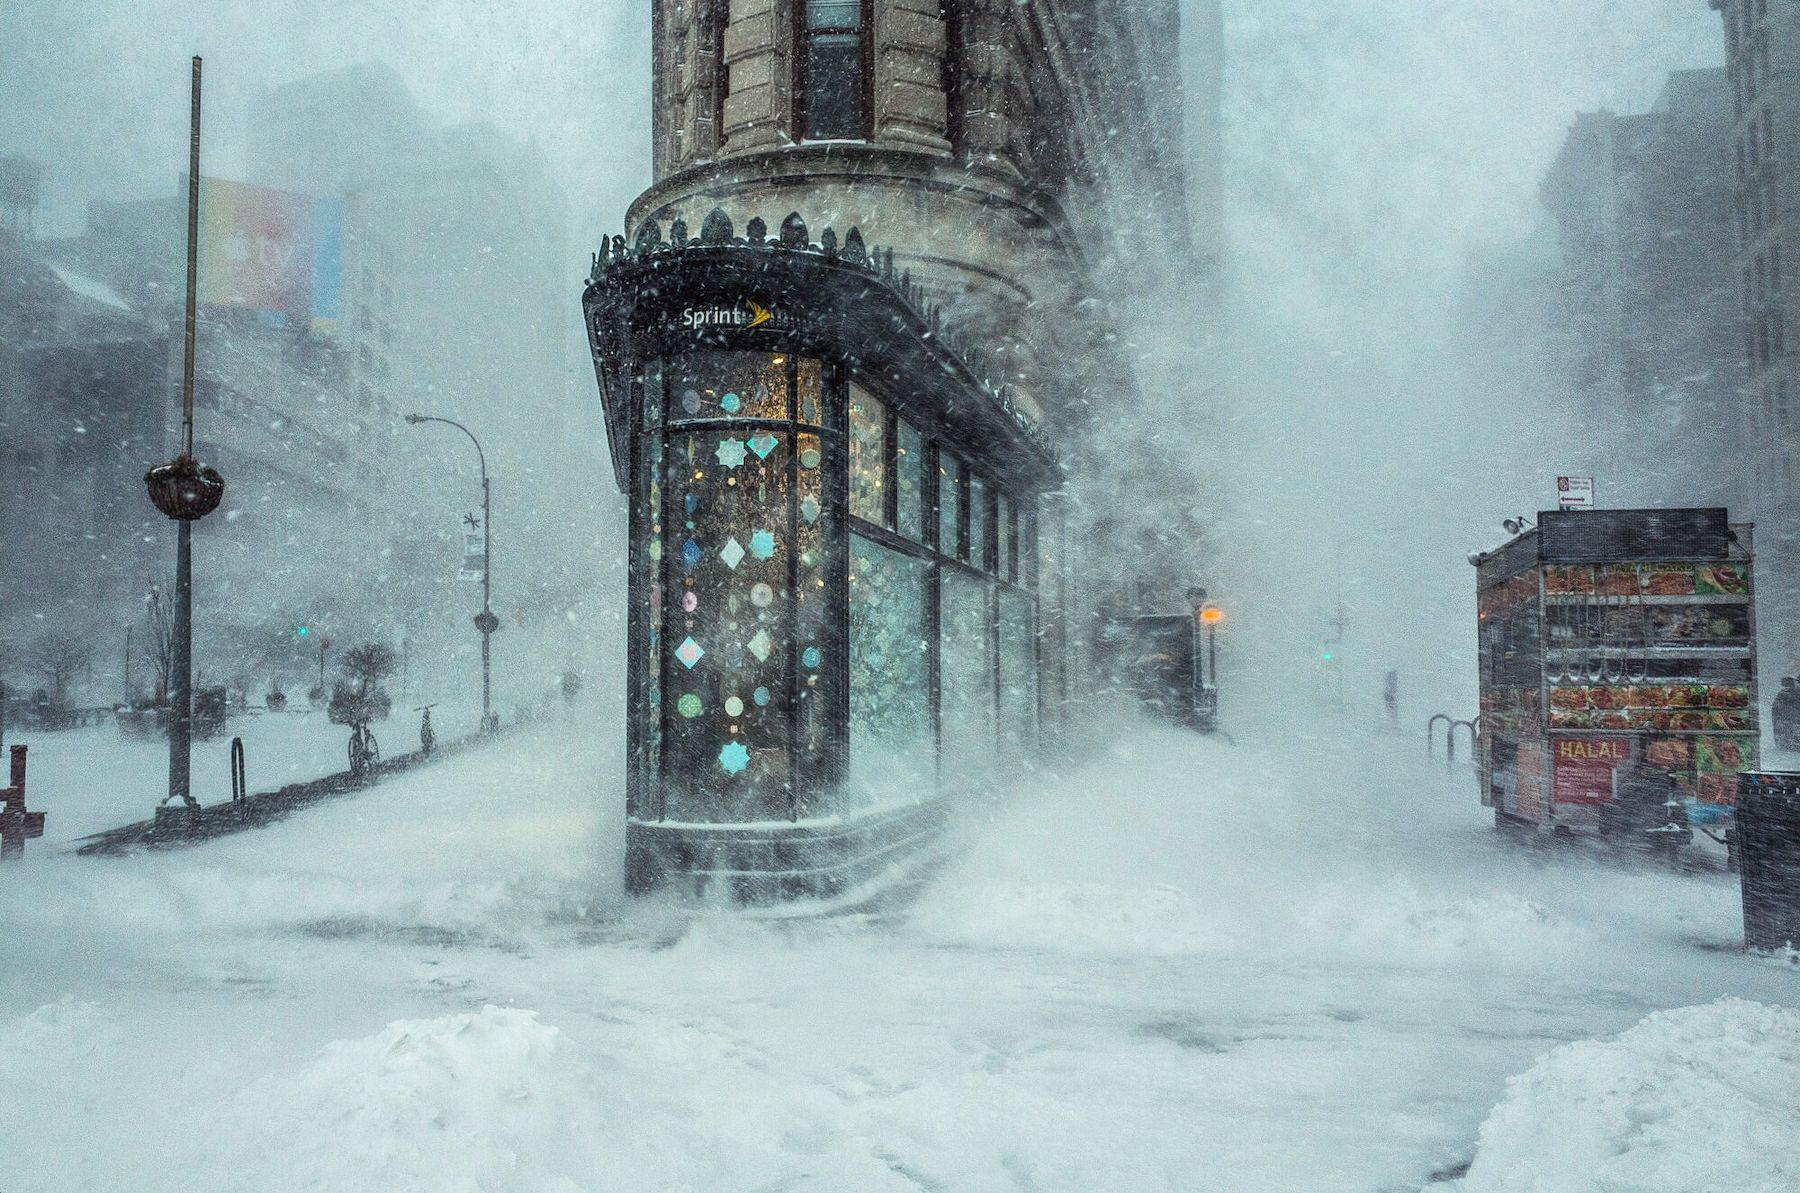 NYC Winter Storm blizzard 2016 photo by Michele Palazzo